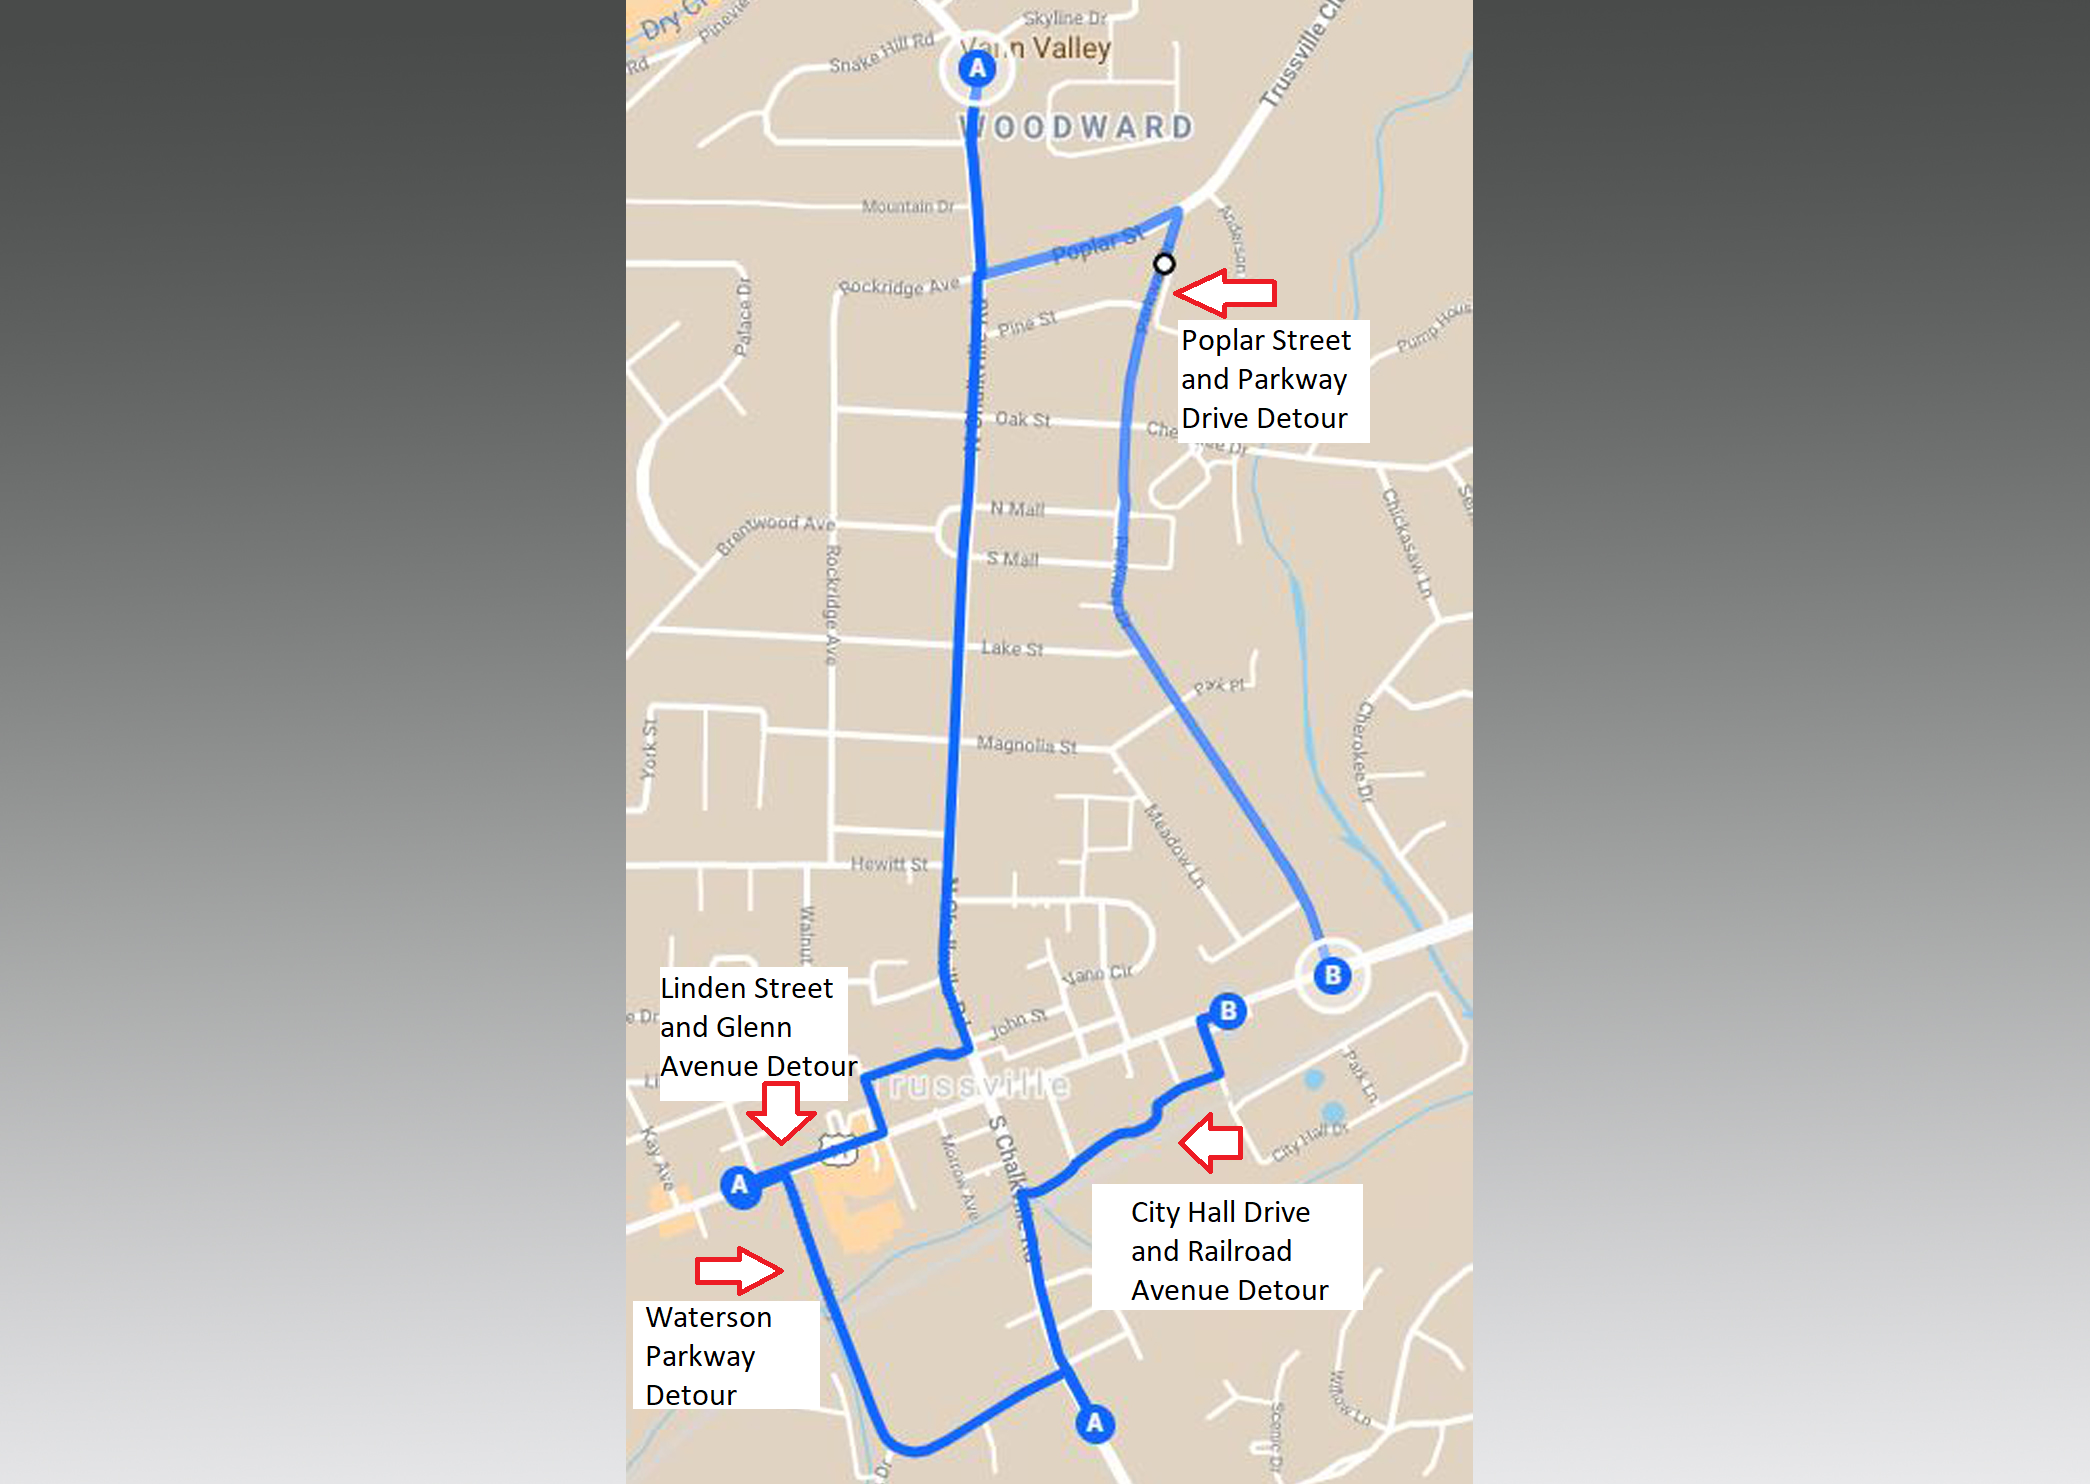 TRAFFIC ALERT: City of Trussville releases map showing detours for major road project